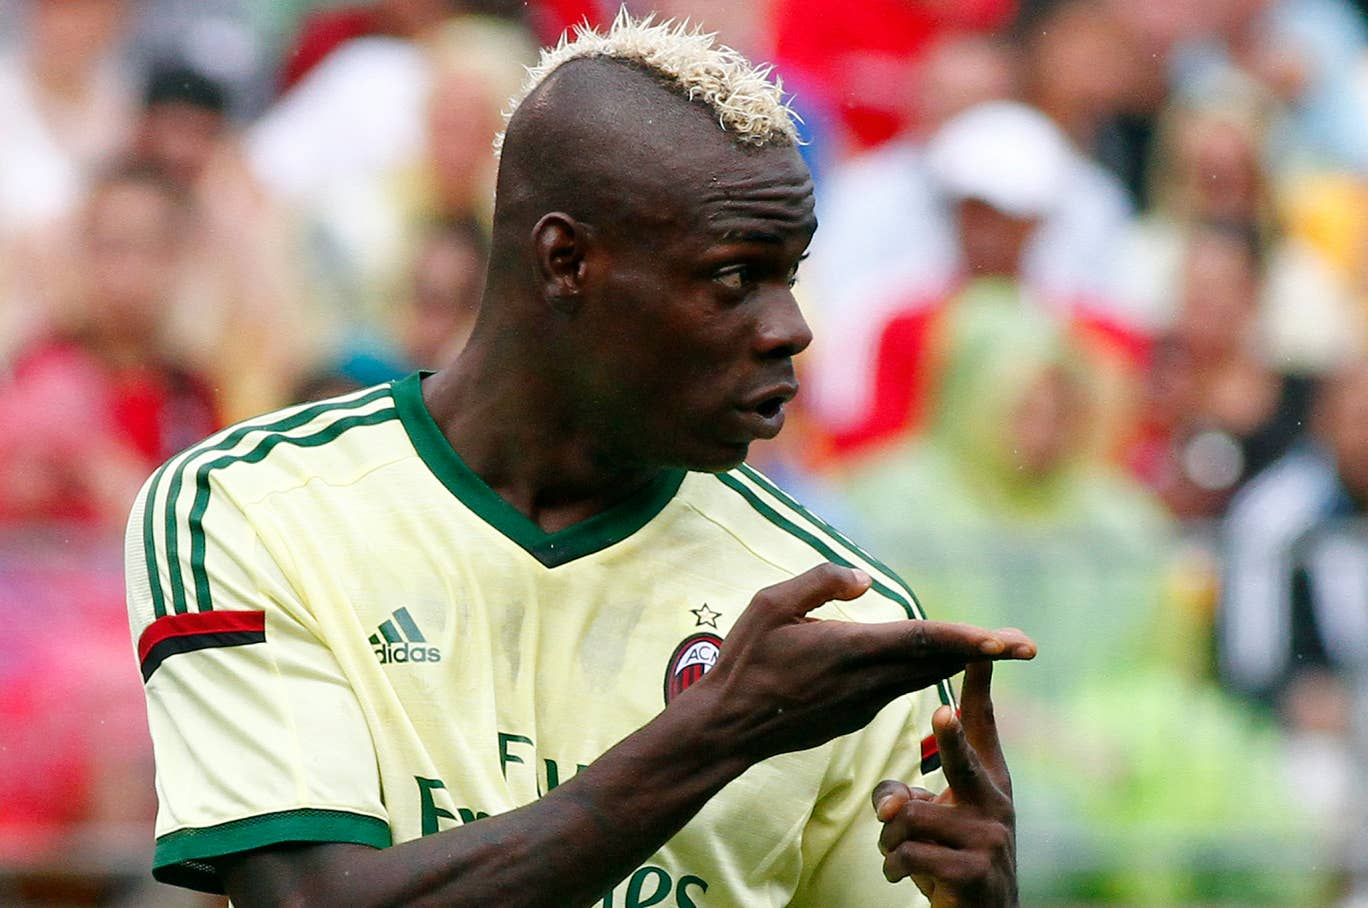 Rodgers showered praise on Balotelli last week, which led to speculation he could sign the AC Milan front man